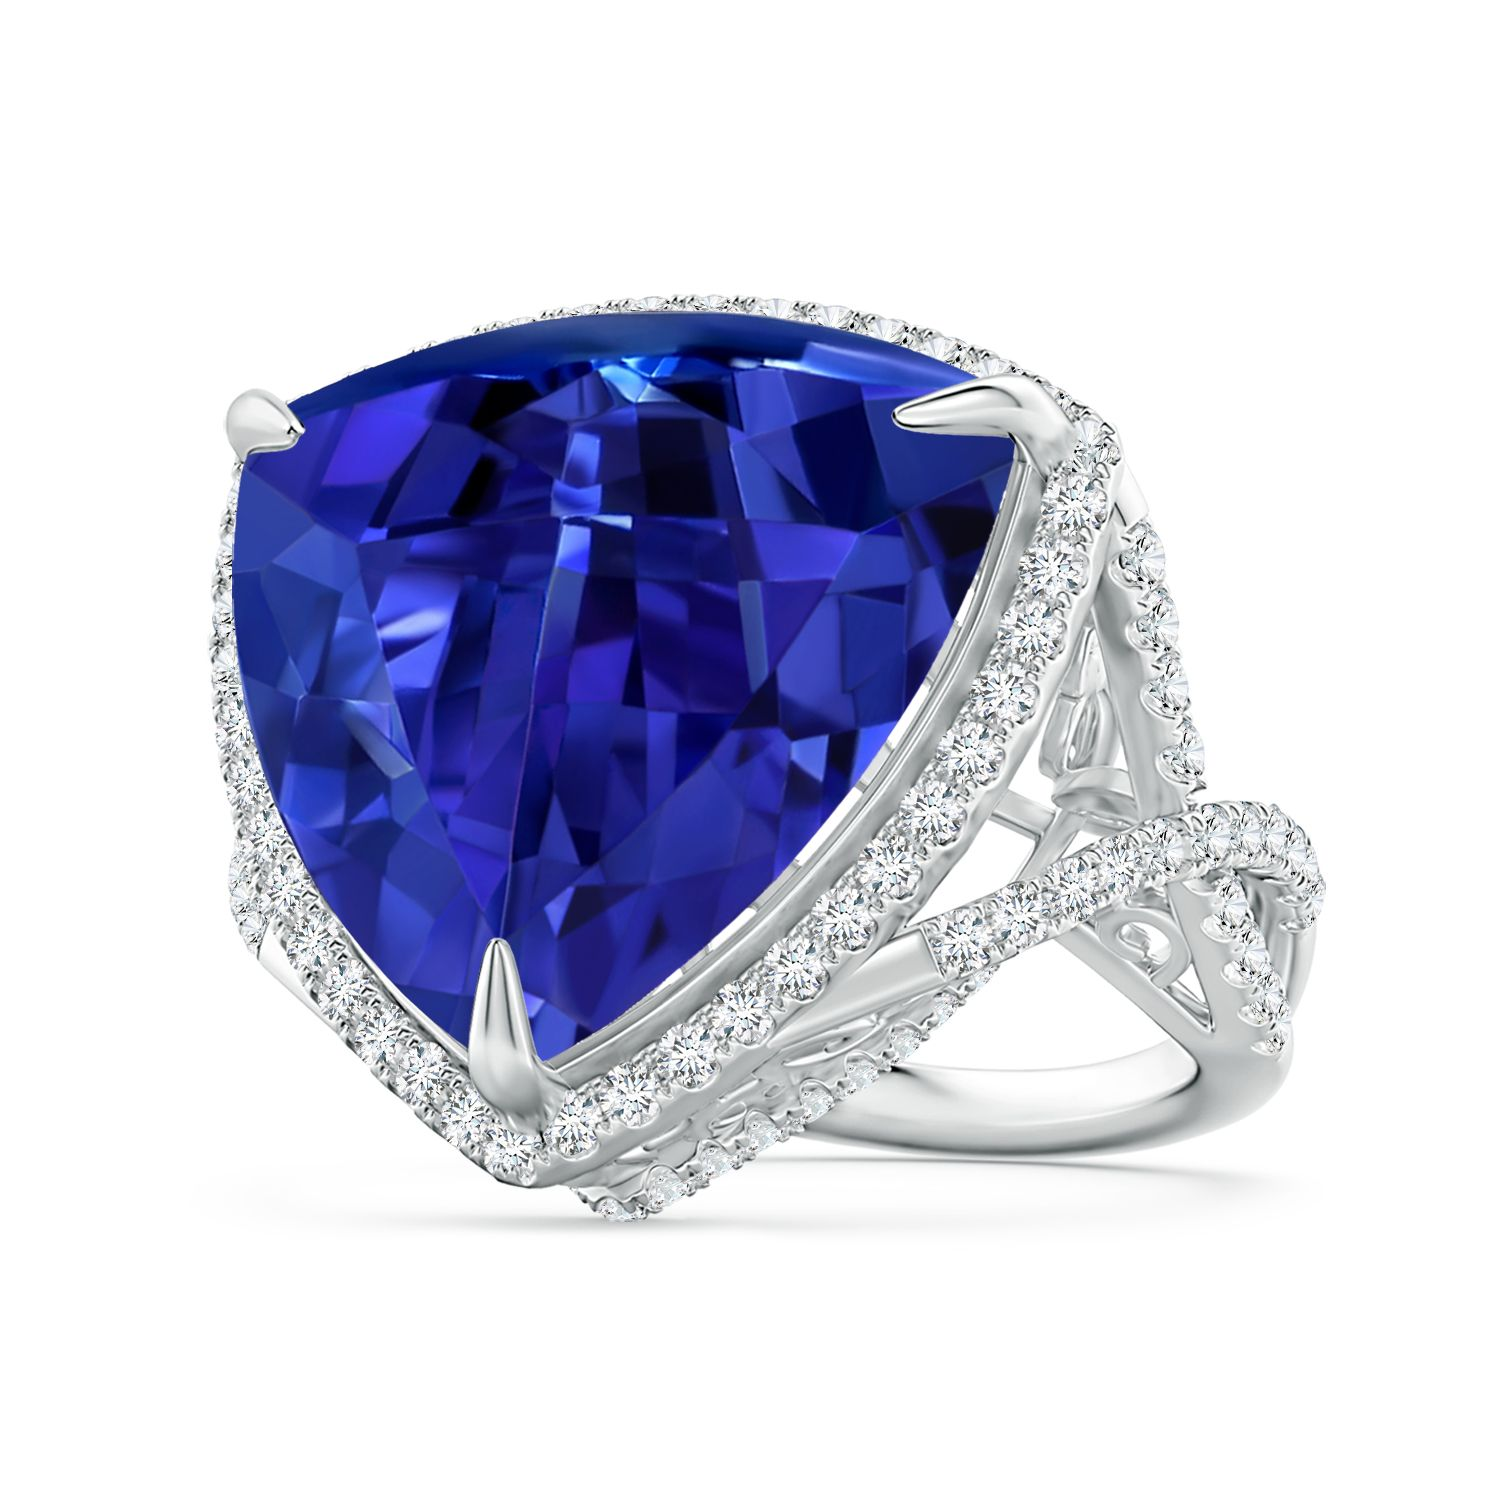 c heavy genuine ring products pearl tanzanite ygr shell mother of gold trillion diamond